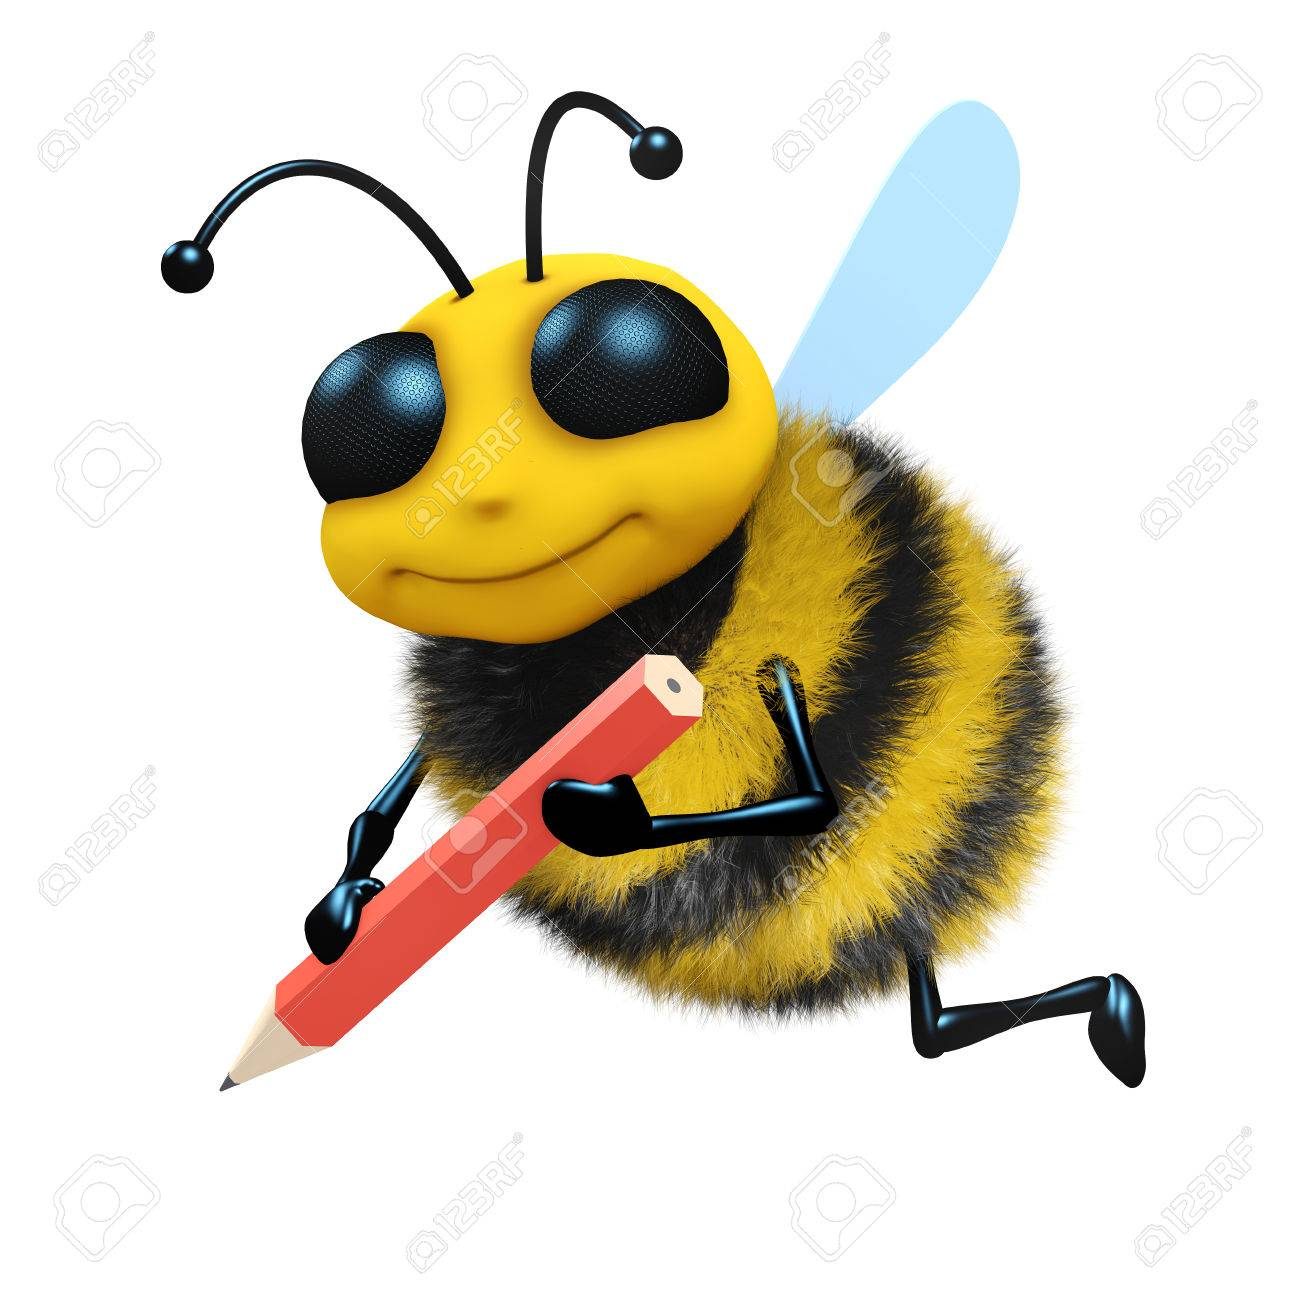 Bees clipart pencil. Honey bee drawing clip